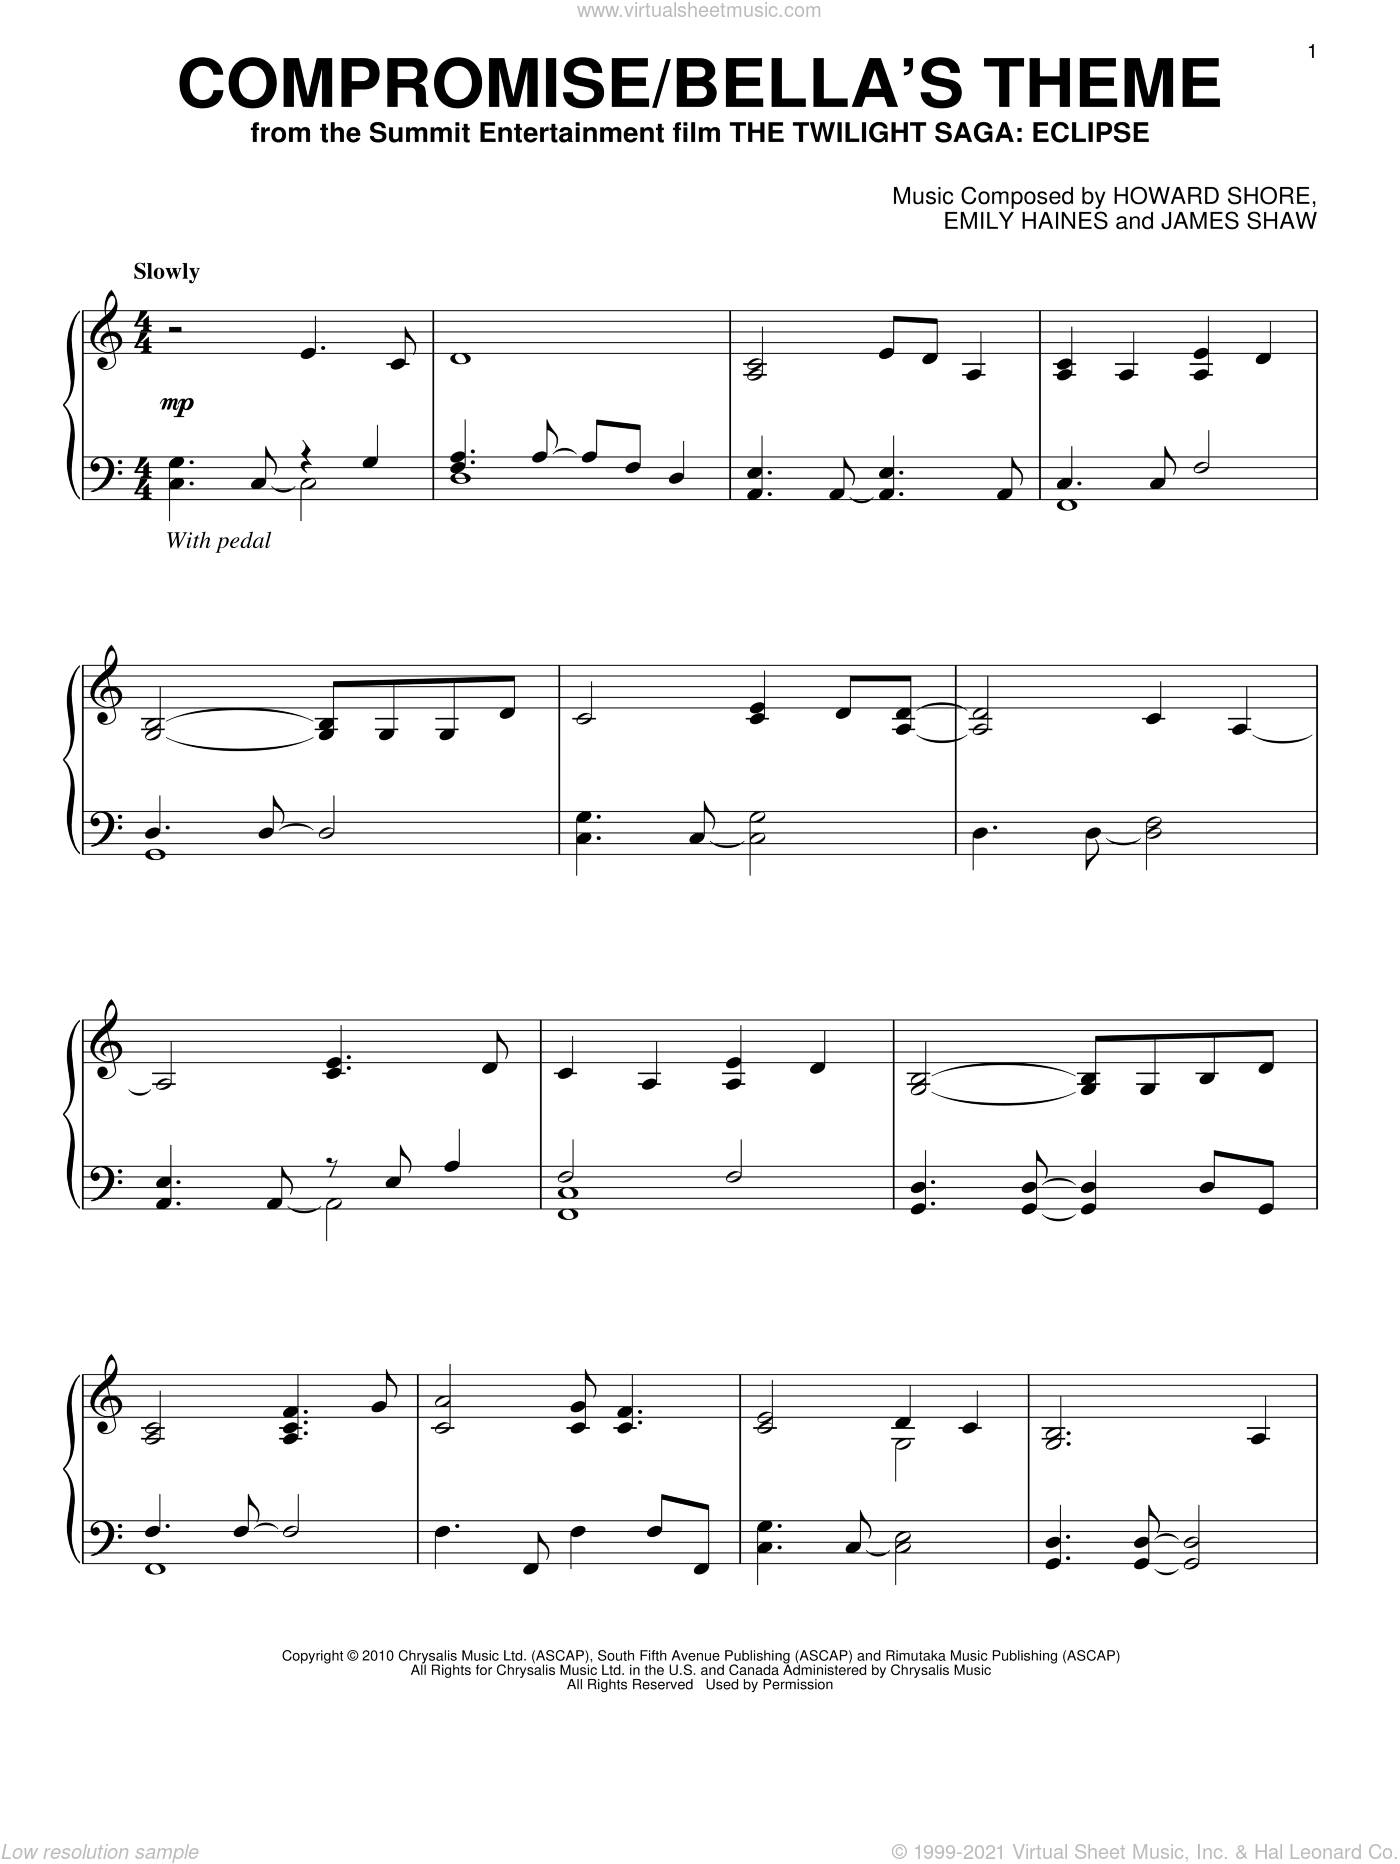 Compromise/Bella's Theme sheet music for piano solo by James Shaw